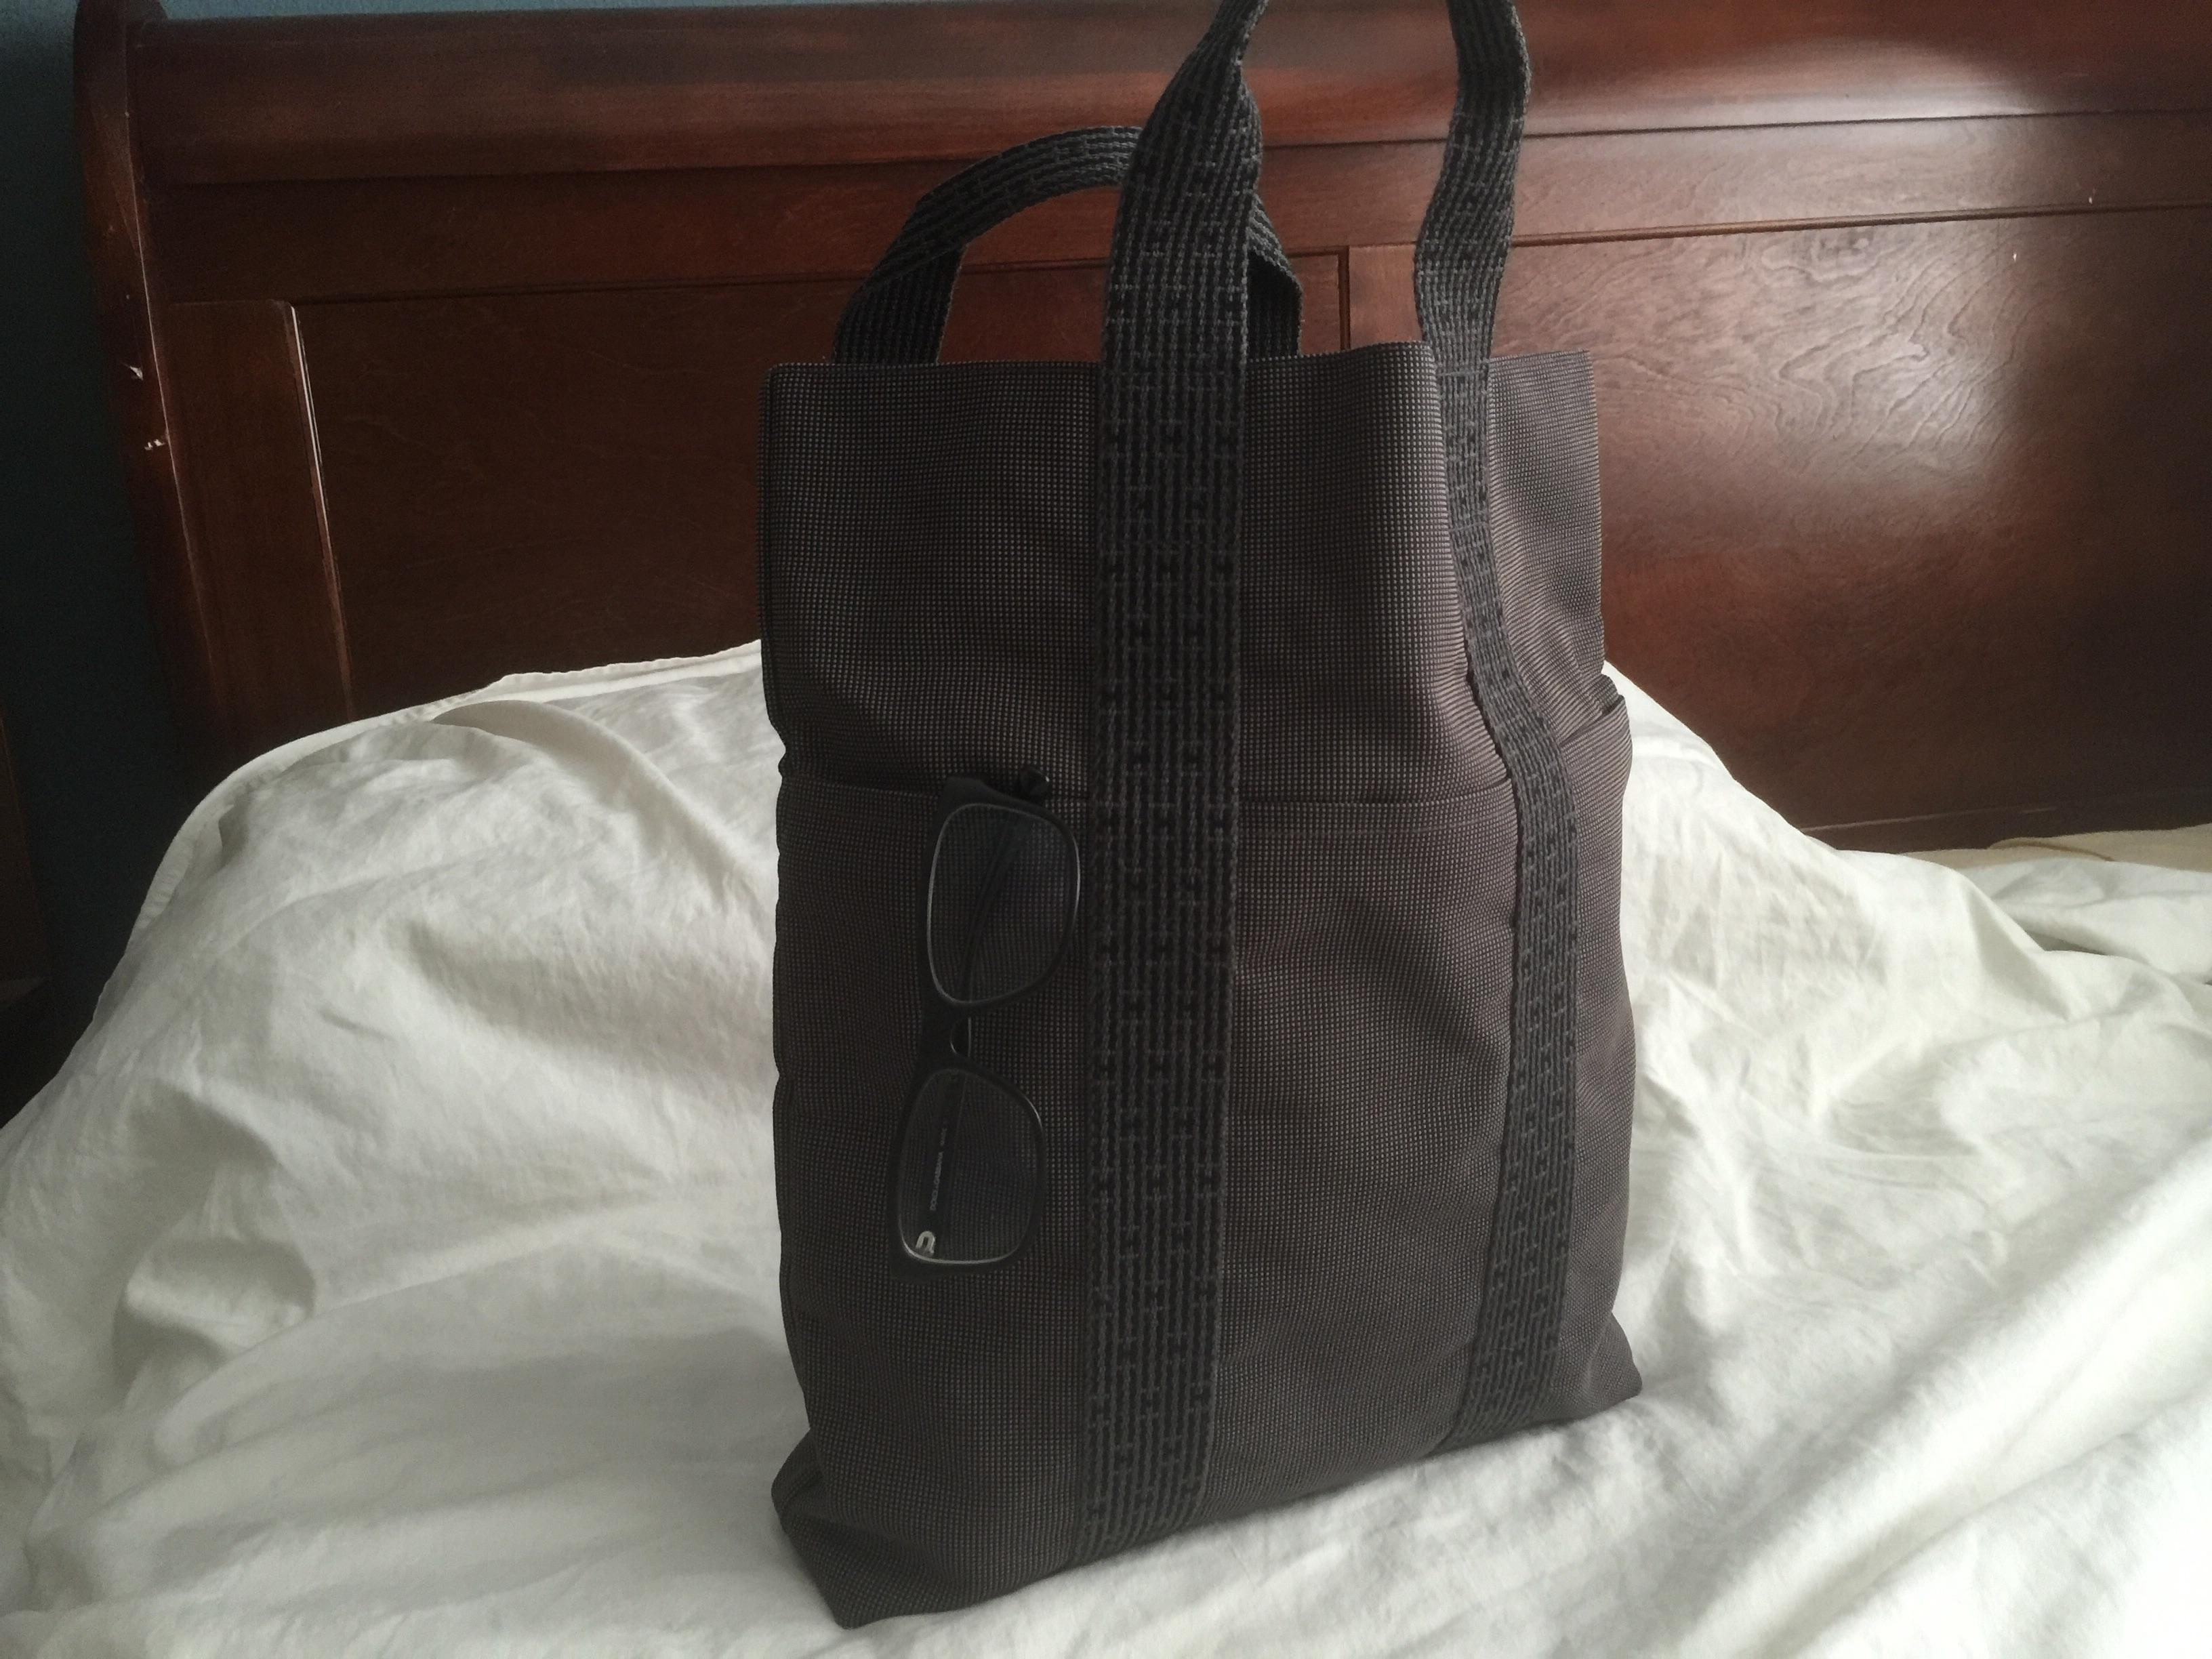 8e83c5f0d ... black grey canvas herline pm tote bag 727d1 be3da aliexpress hermès  hermes herline cabas canvas hand tote bag.